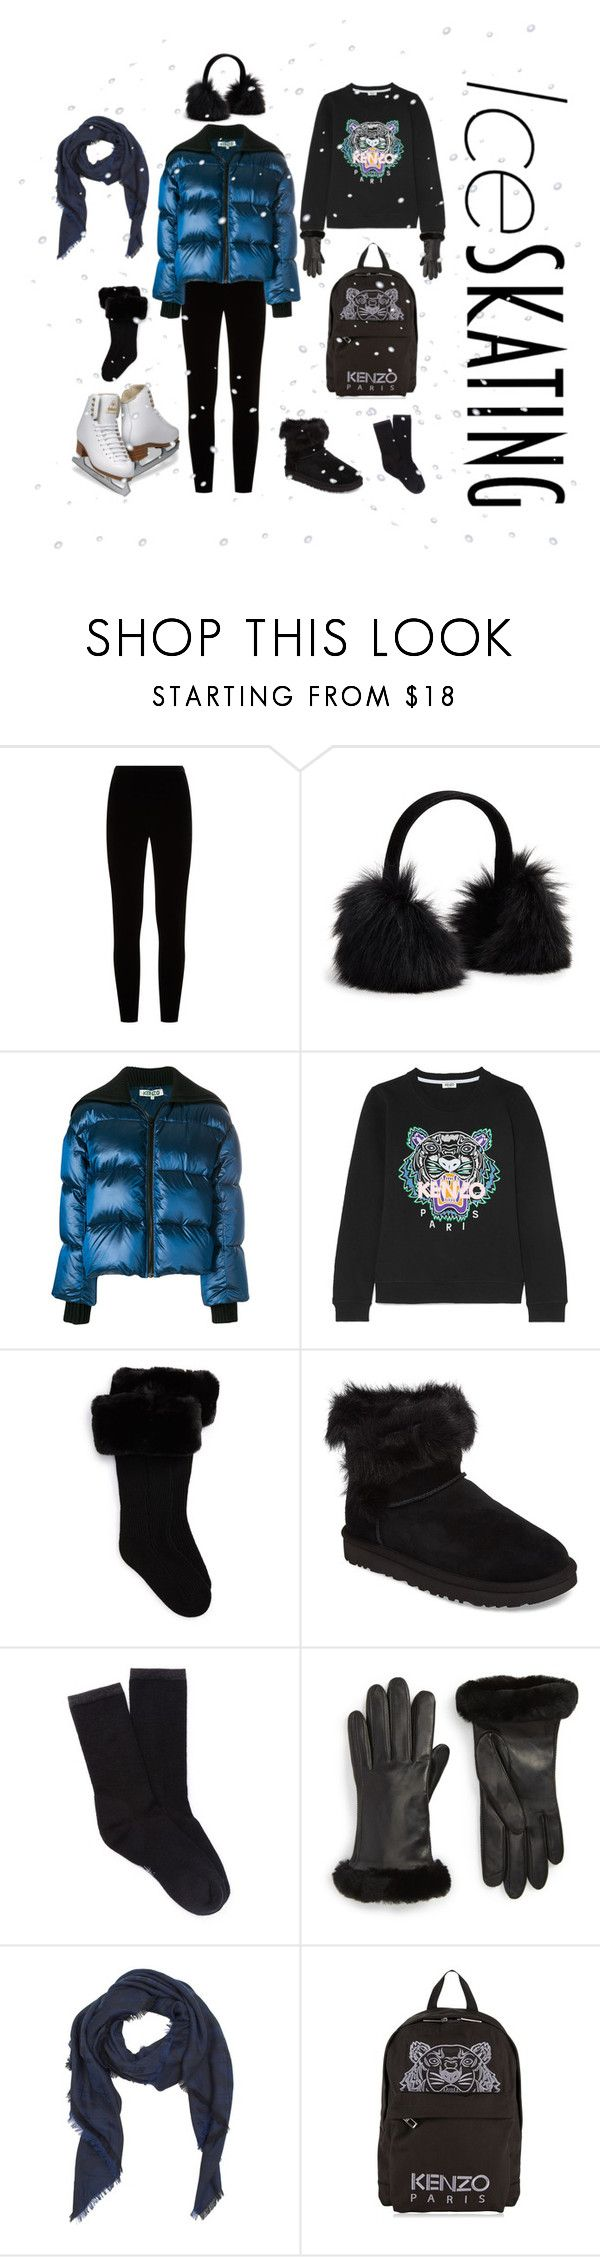 """""""Skate Date: Ice Skating Outfit"""" by claudiamarzo ❤ liked on Polyvore featuring Eileen Fisher, Surell, Kenzo, UGG, Smartwool, UGG Collection and iceskatingoutfit"""